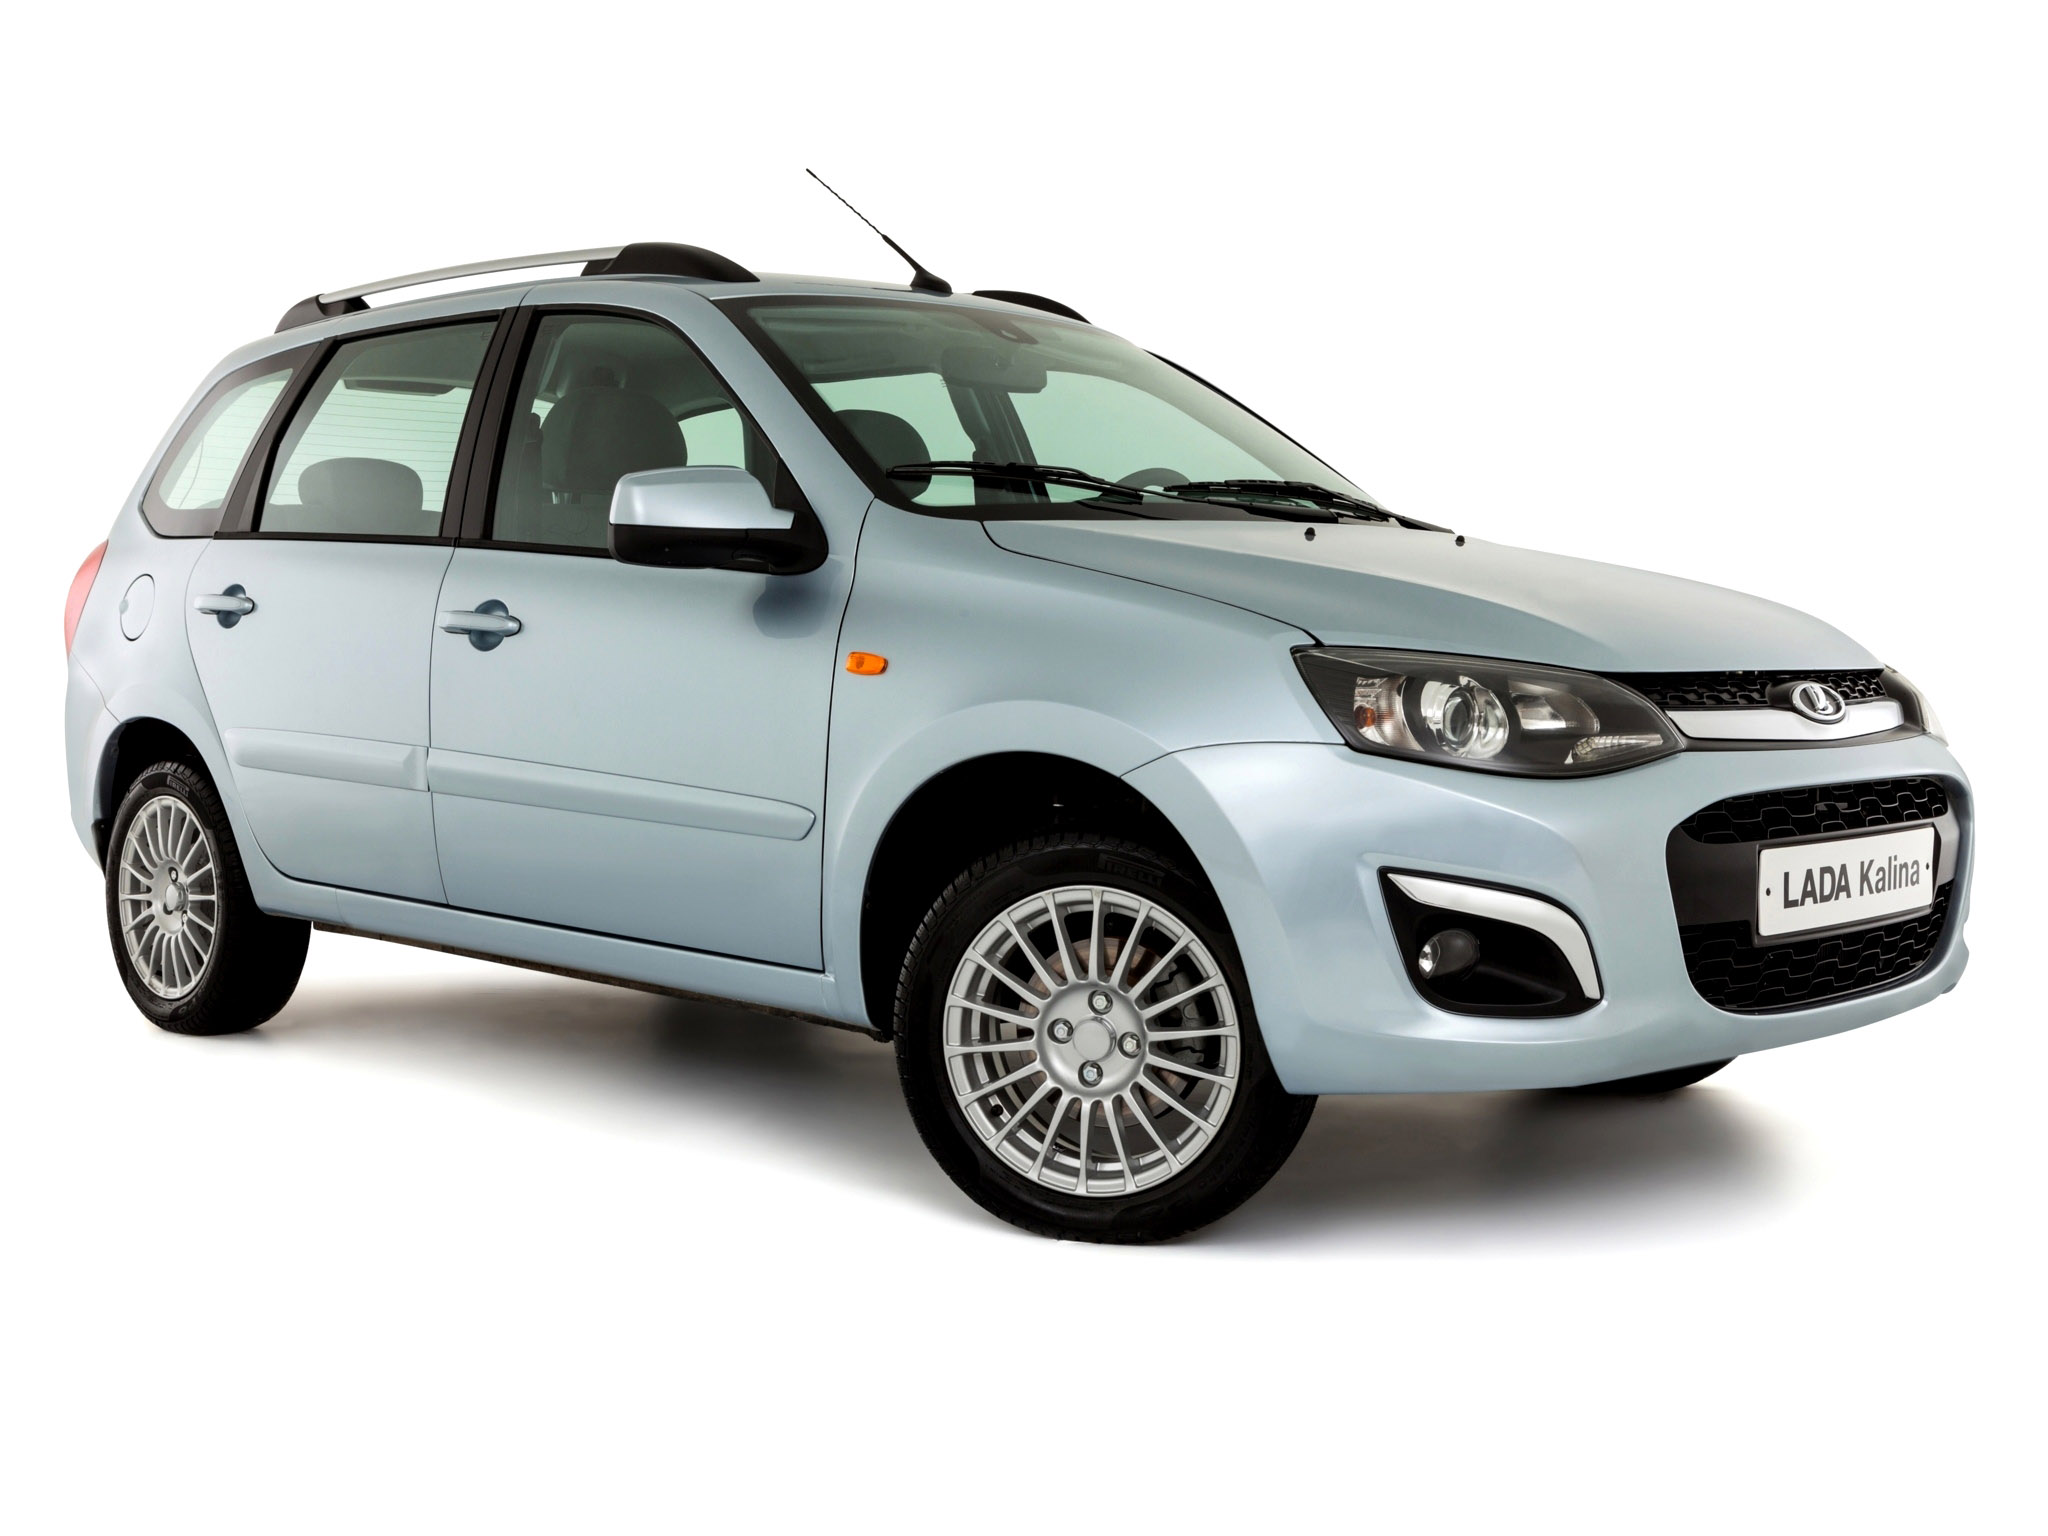 Production of the new Lada Kalina commences in Russia